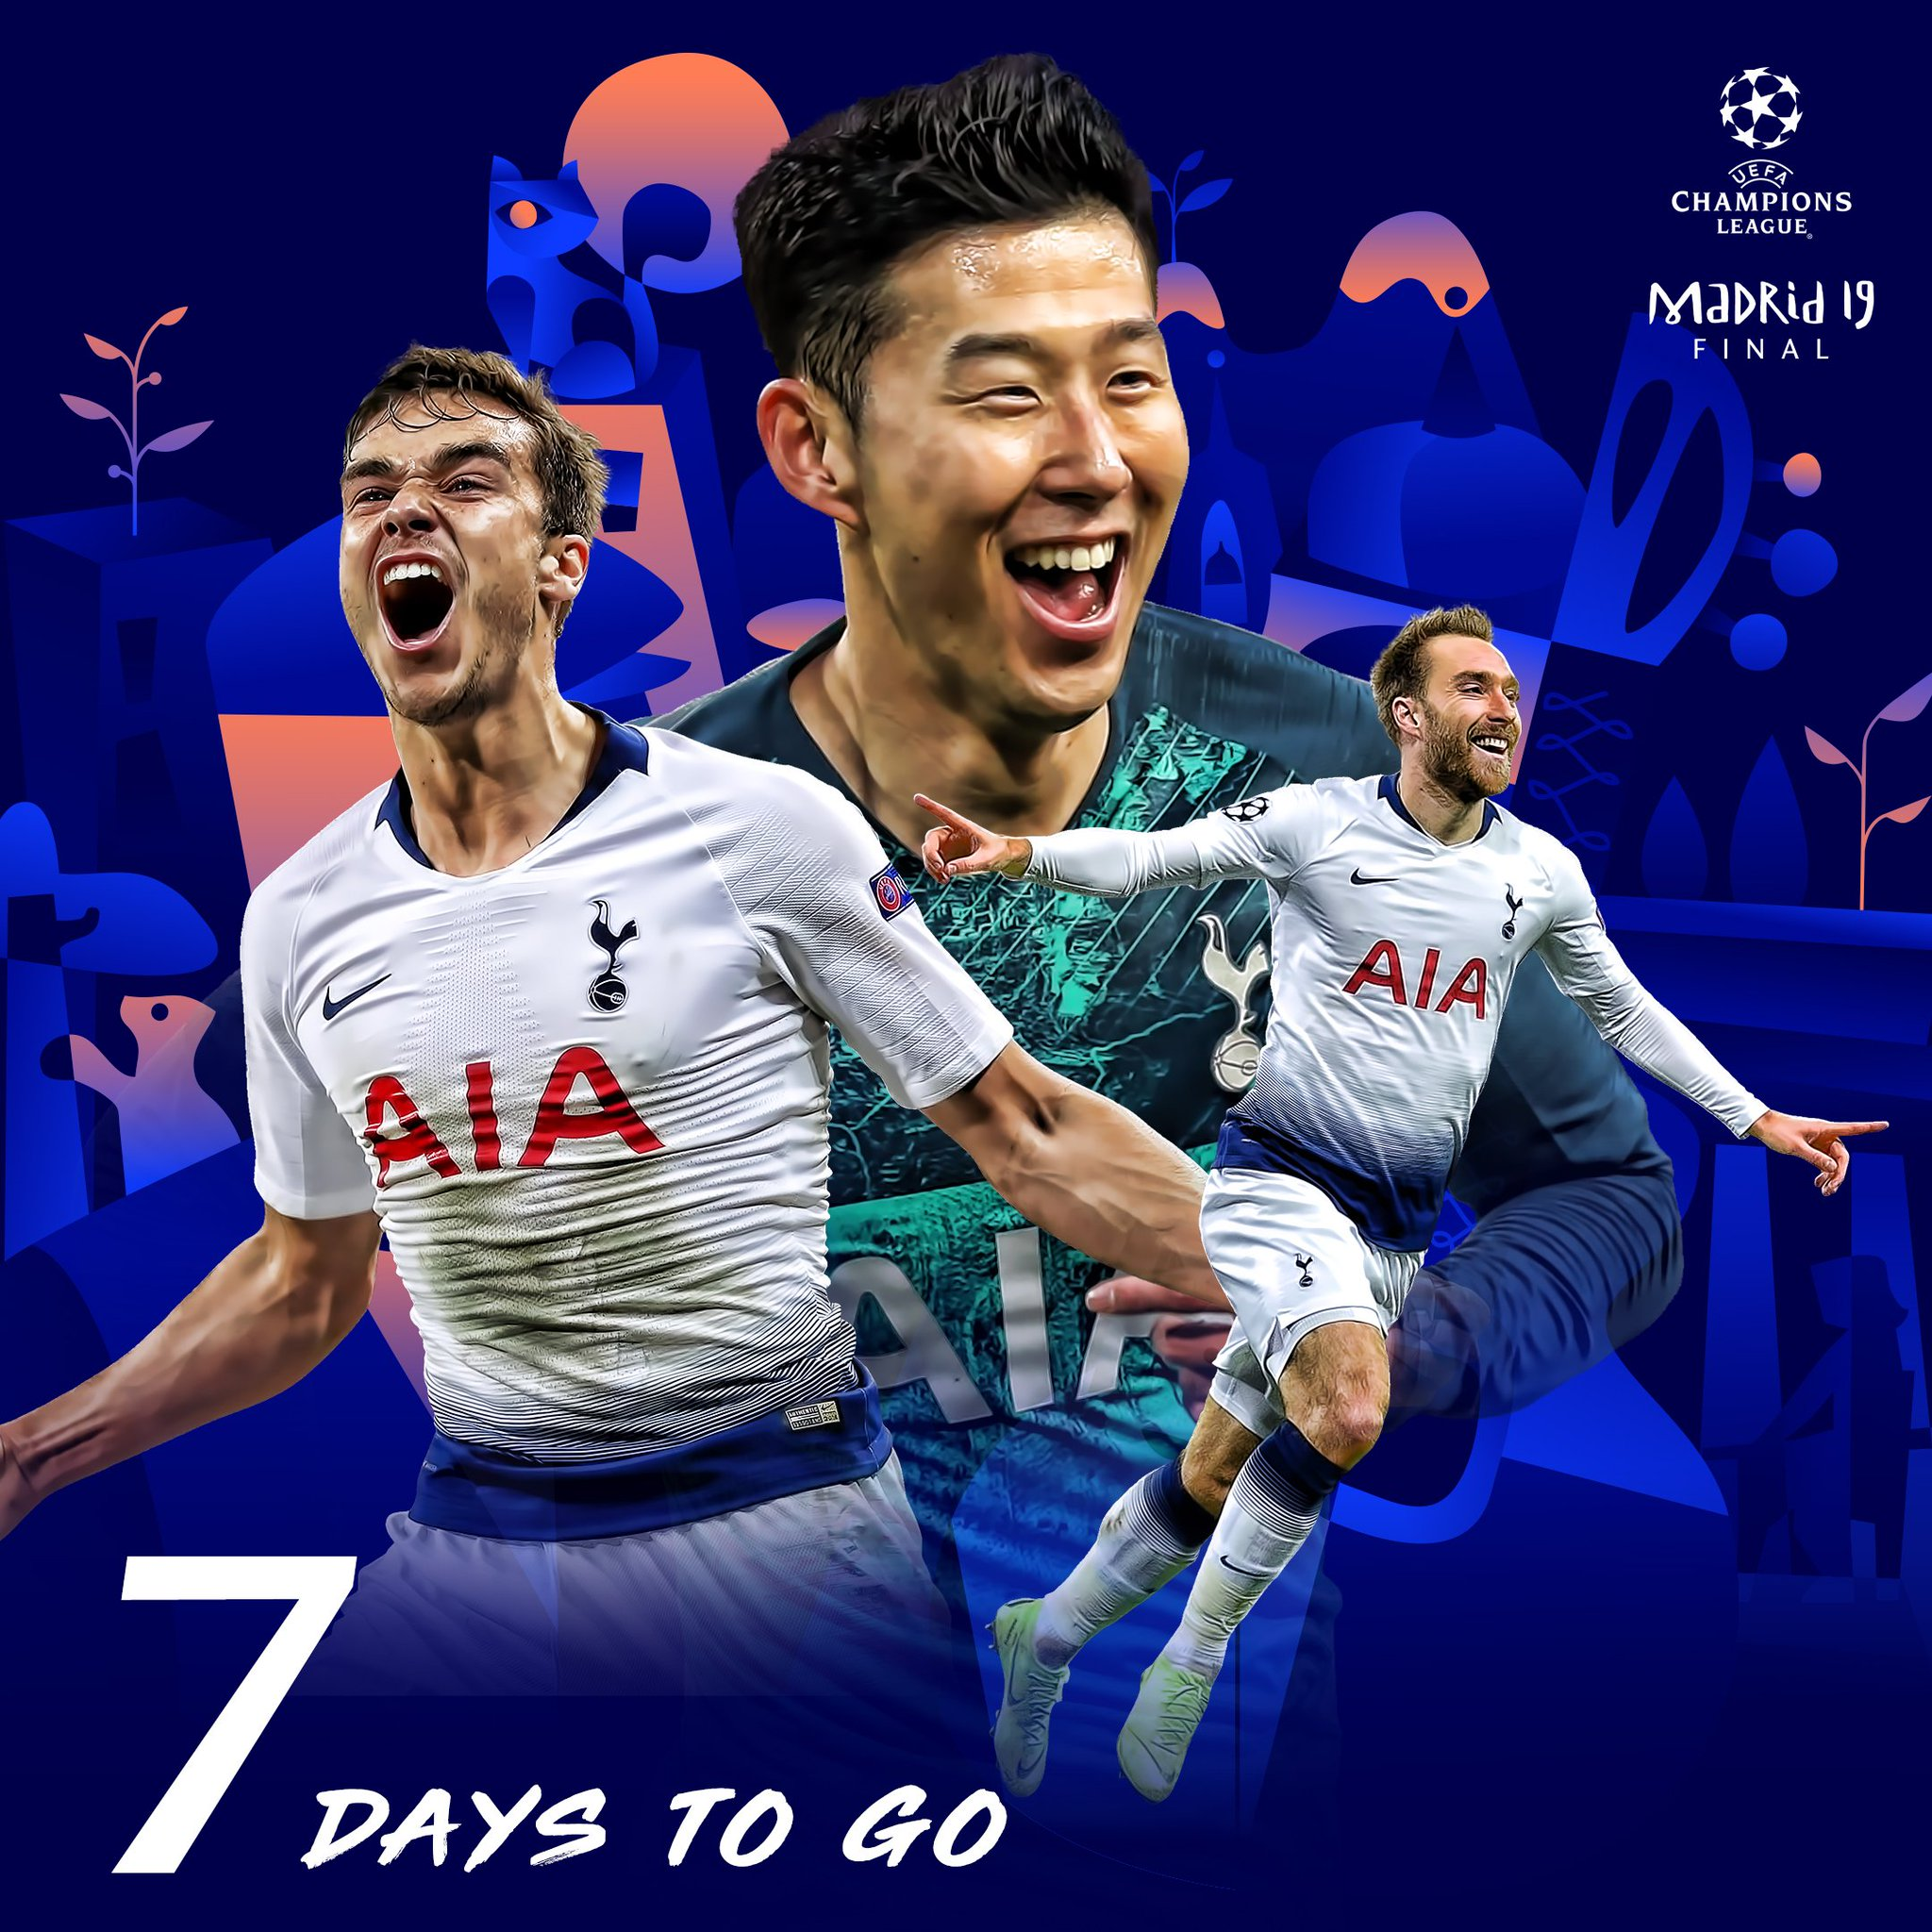 ⌛️⚽️ #UCLfinal,  7️⃣ and counting!   #MarchToMadrid ⚪️ #COYS https://t.co/UpaJHibri5